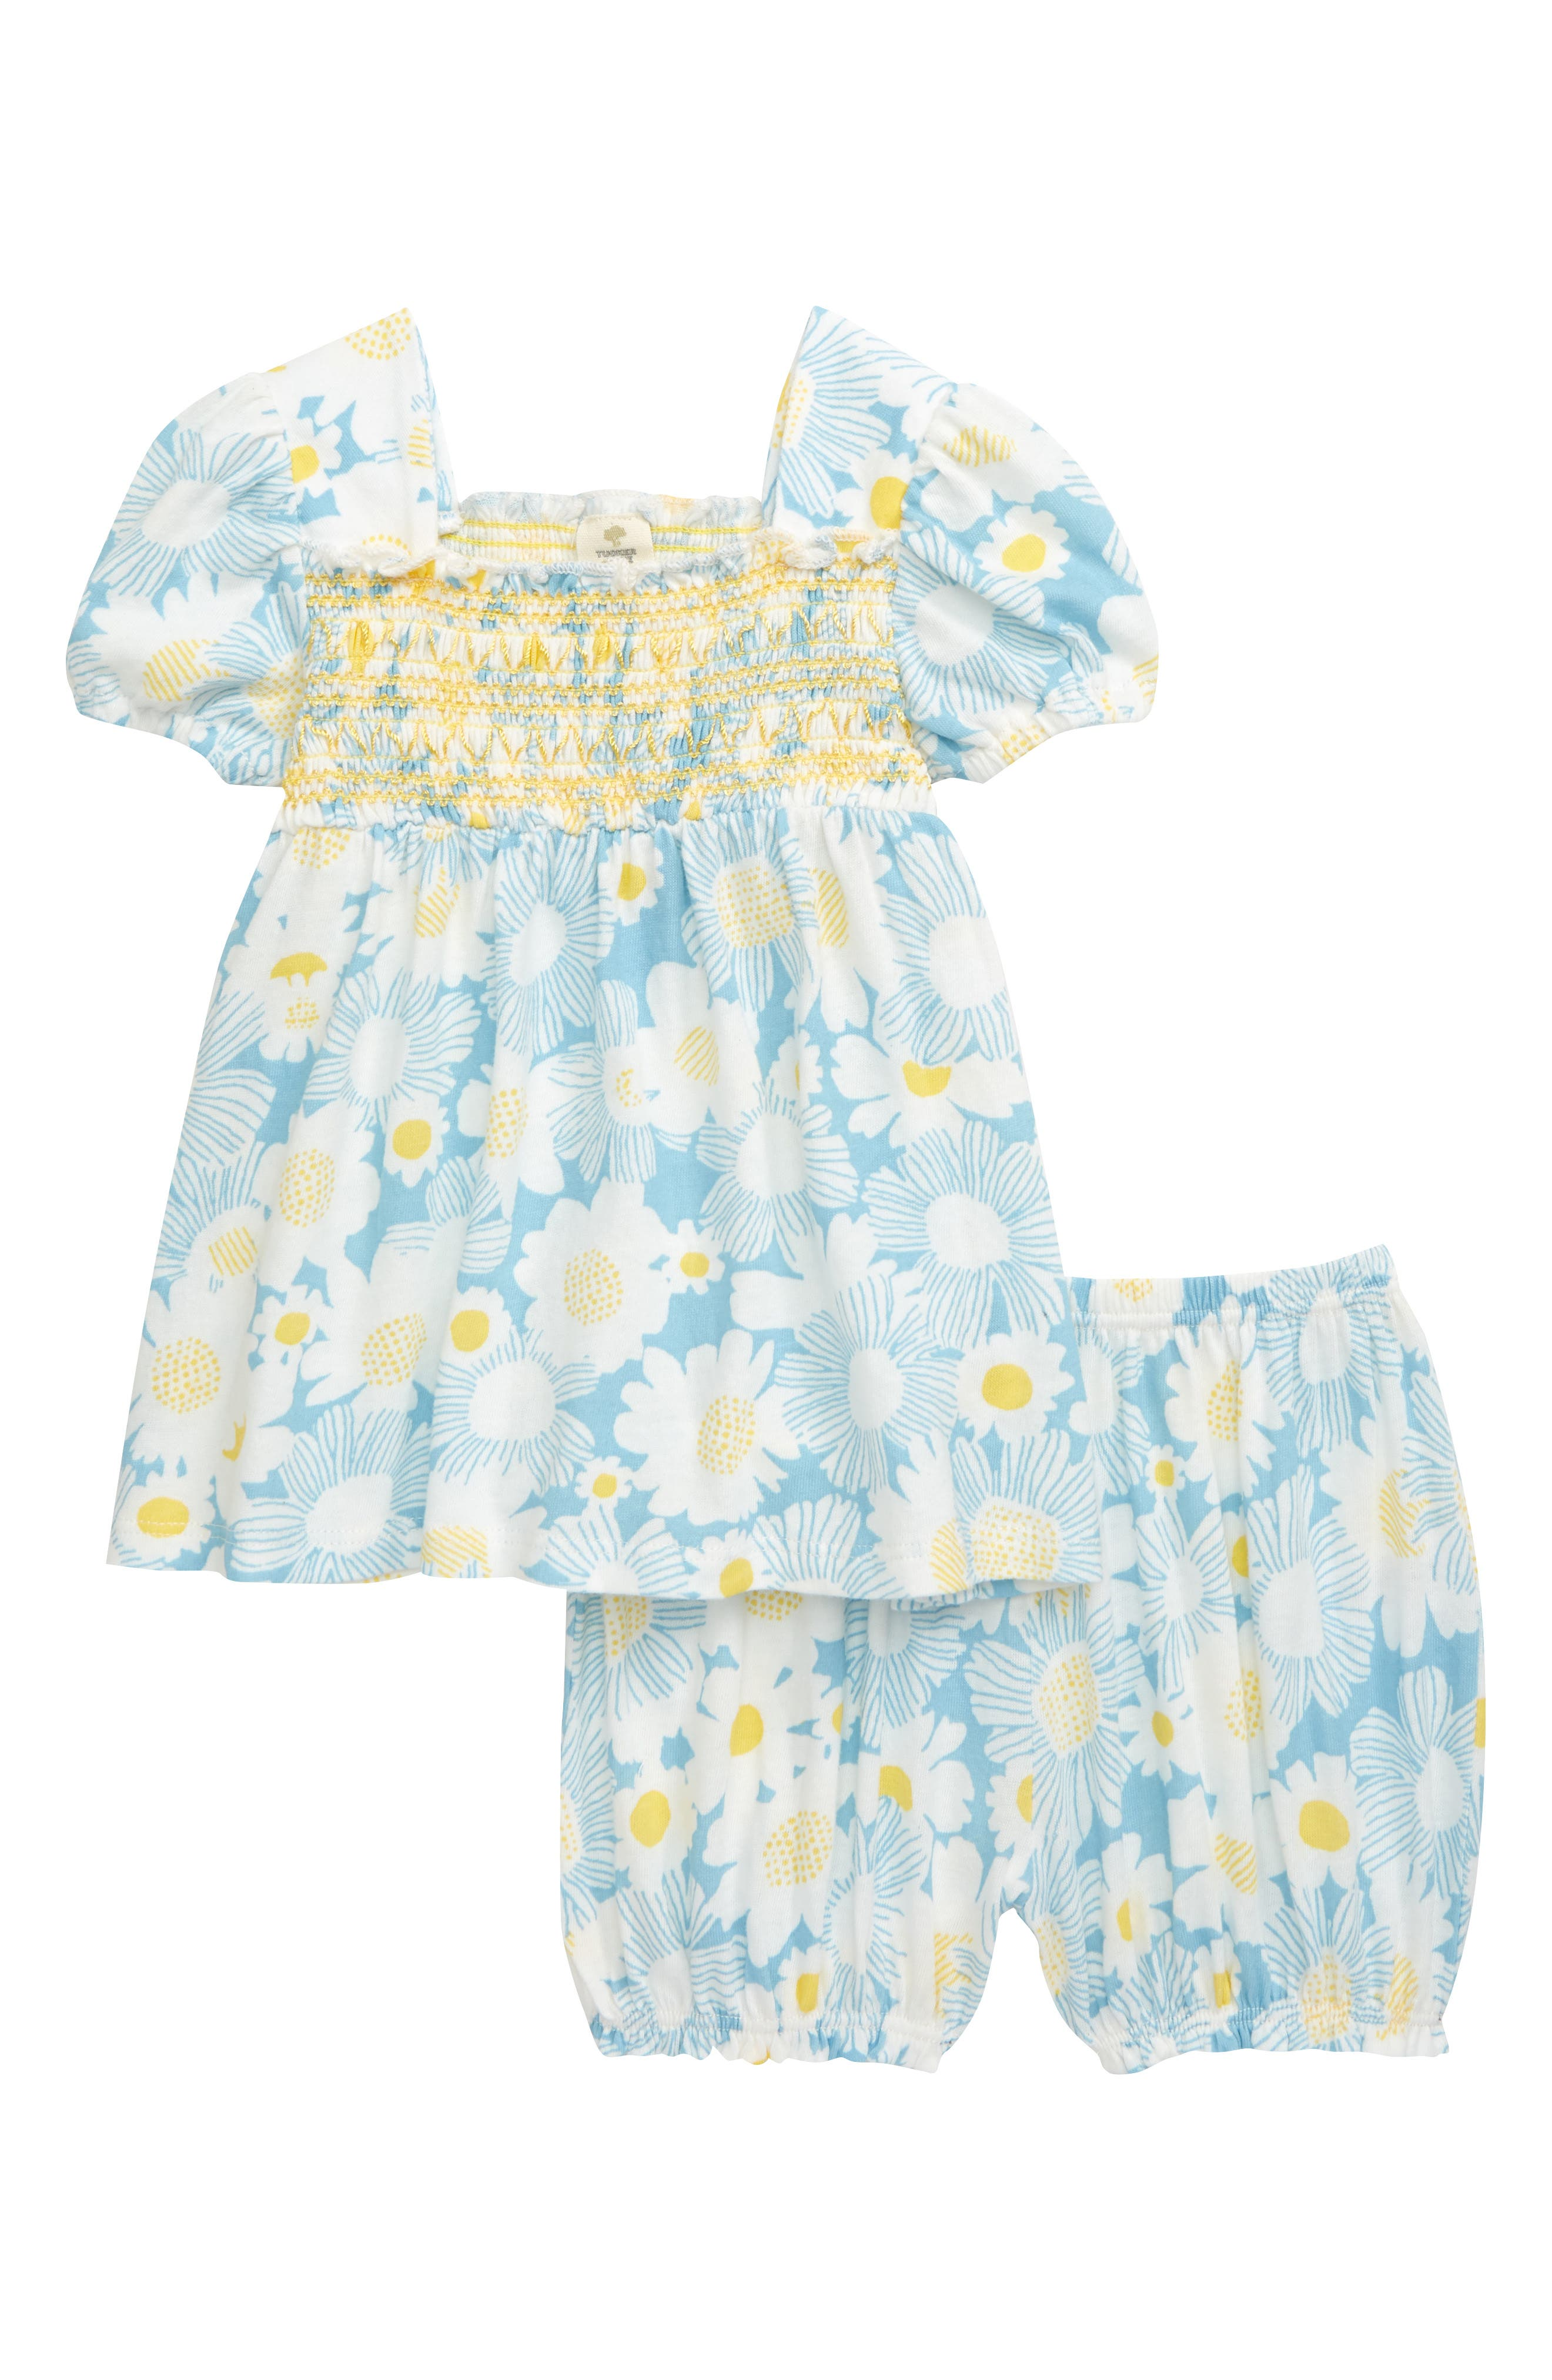 Cheery flowers pattern a summery cotton set featuring a smocked puff-sleeve top and coordinating shorts. Style Name: Tucker + Tate Puff Sleeve Top & Shorts Set (Baby). Style Number: 5958273. Available in stores.